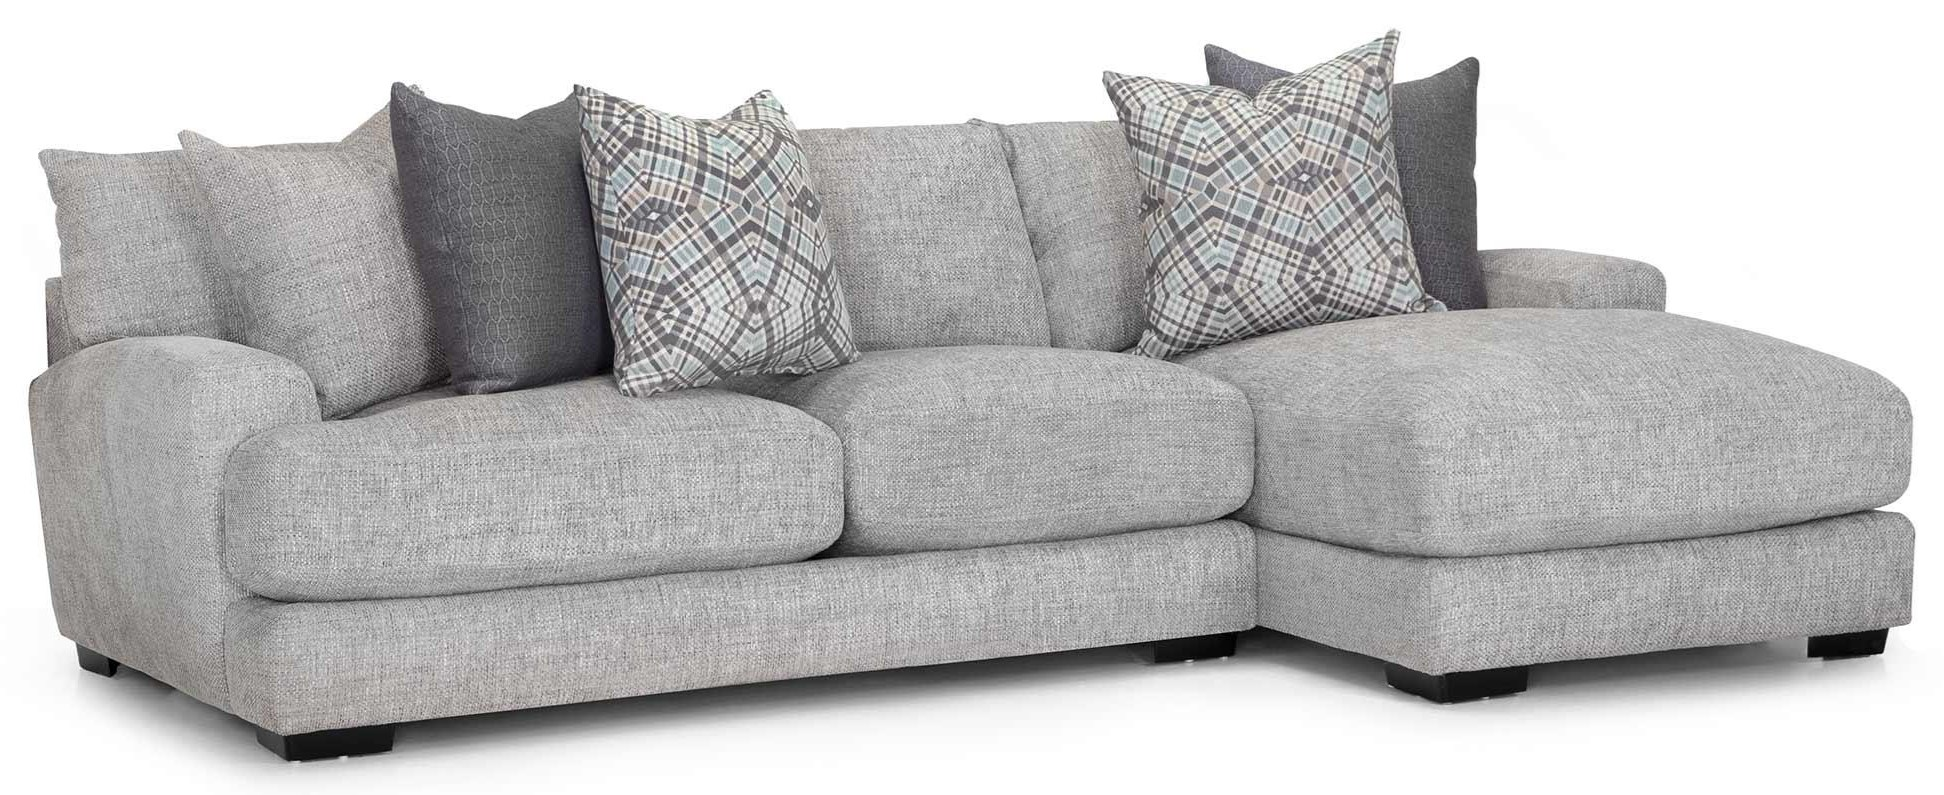 903 Two Piece Sectional -Grey by Franklin at Furniture Fair - North Carolina